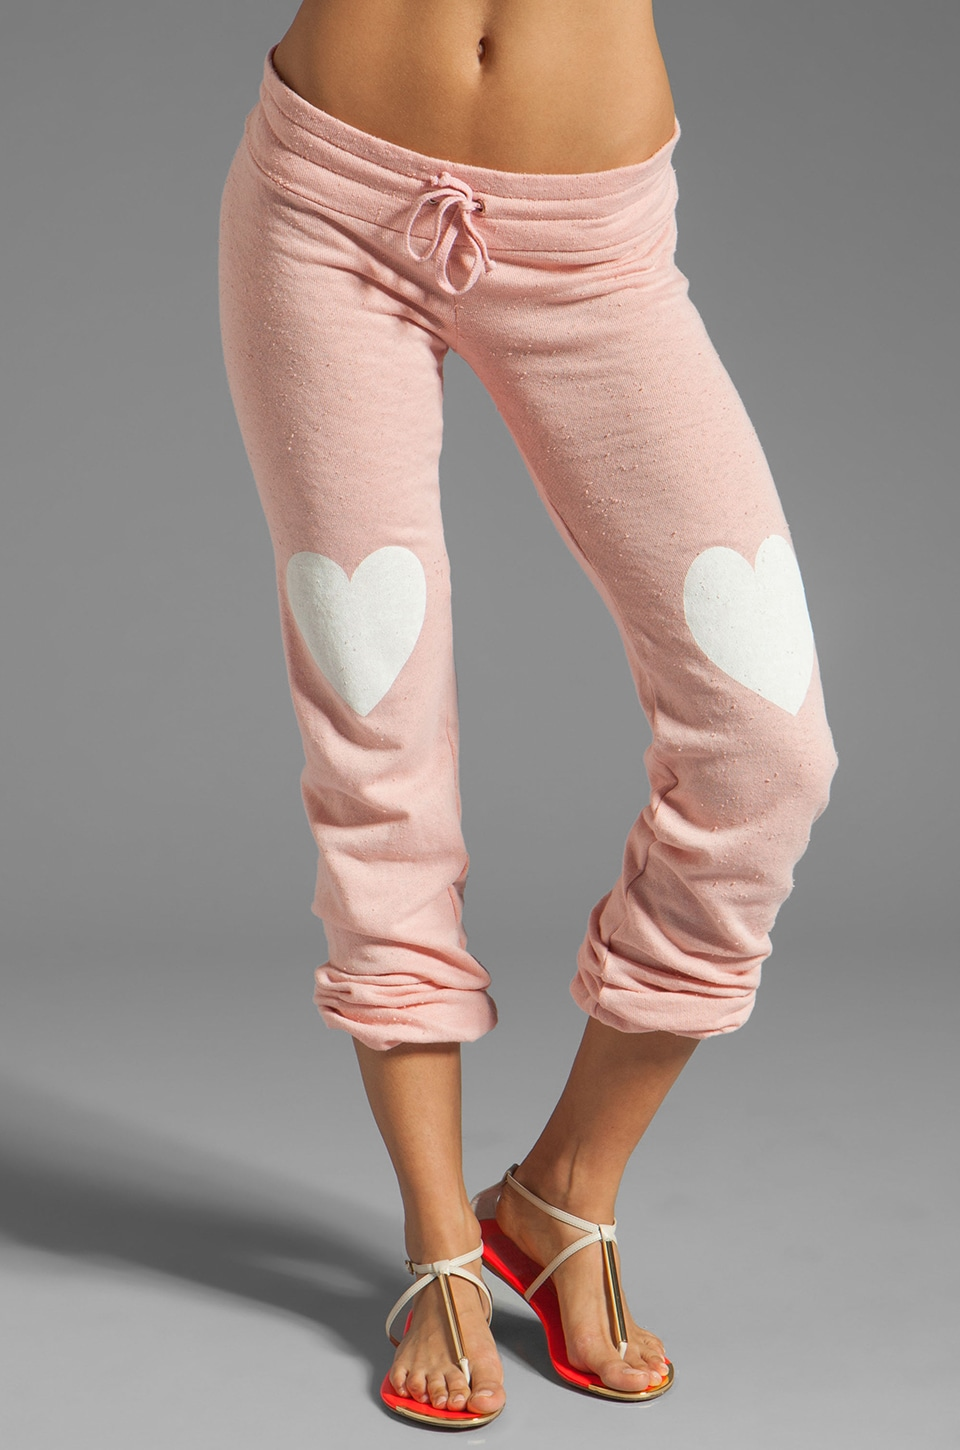 Wildfox Couture Lover Bottoms Skinny Sweatpants in Poodle Pink